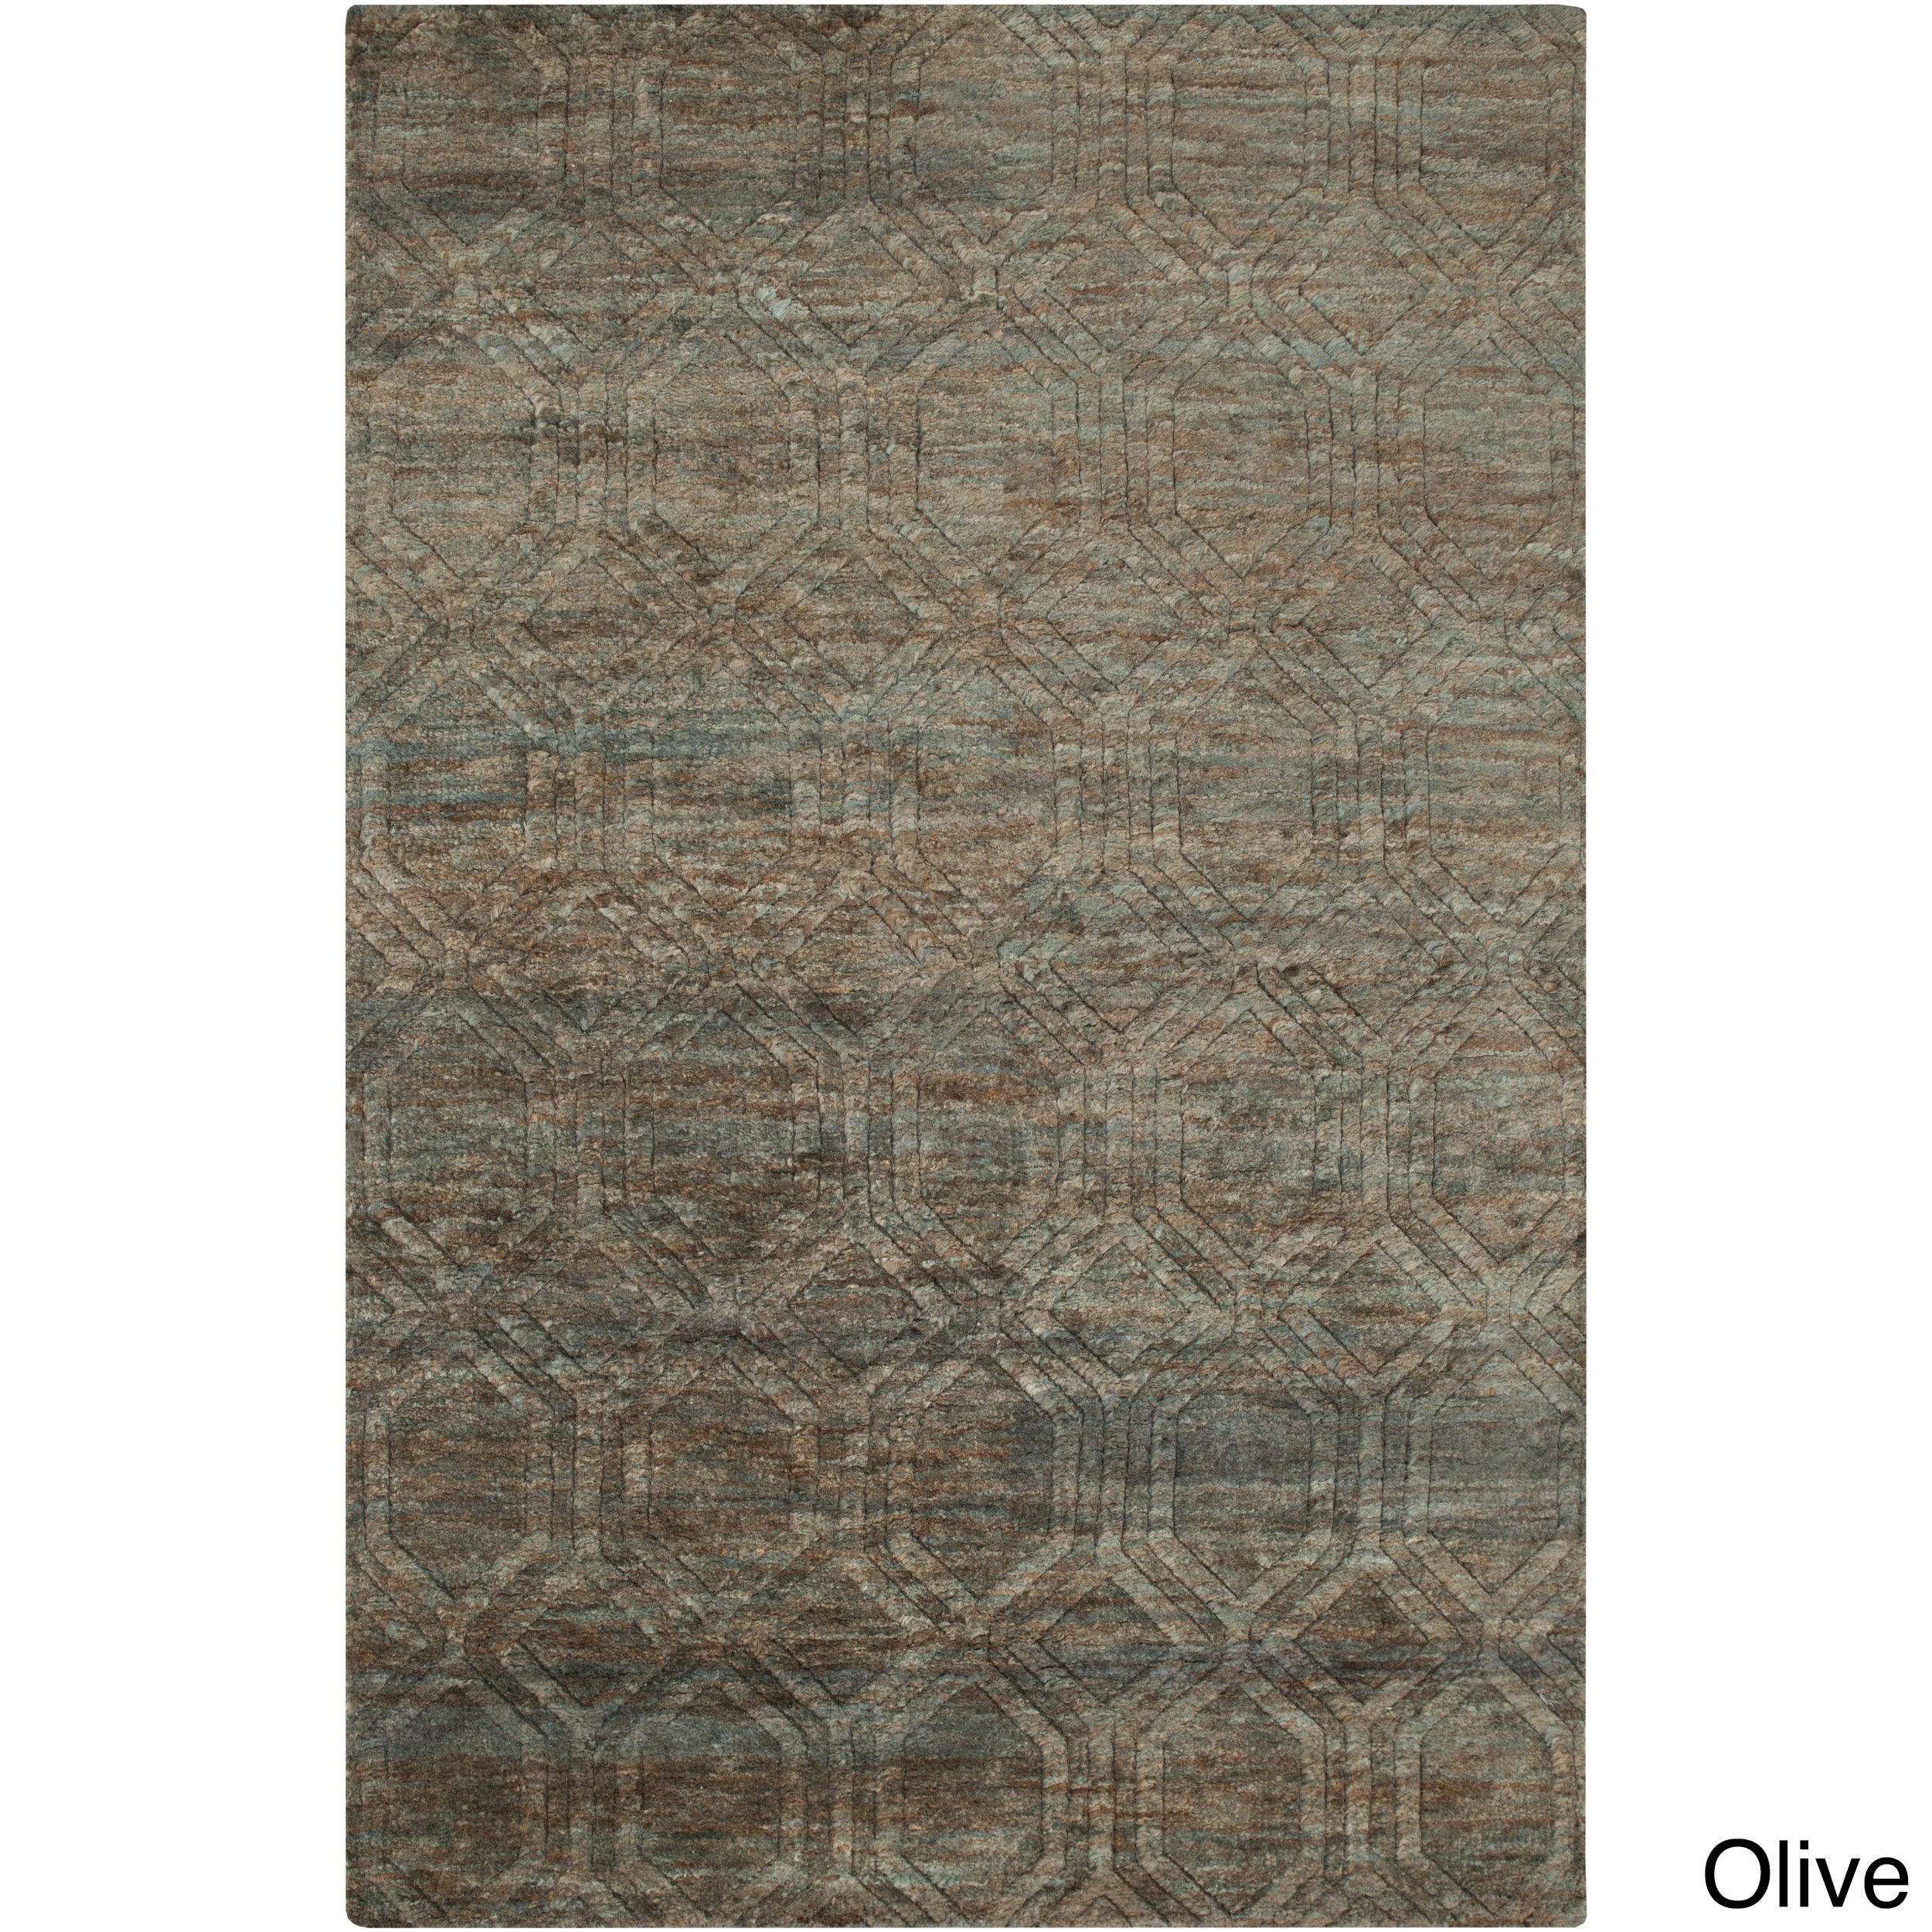 Hand Knotted Sherri Abstract Pattern Jute Area Rug